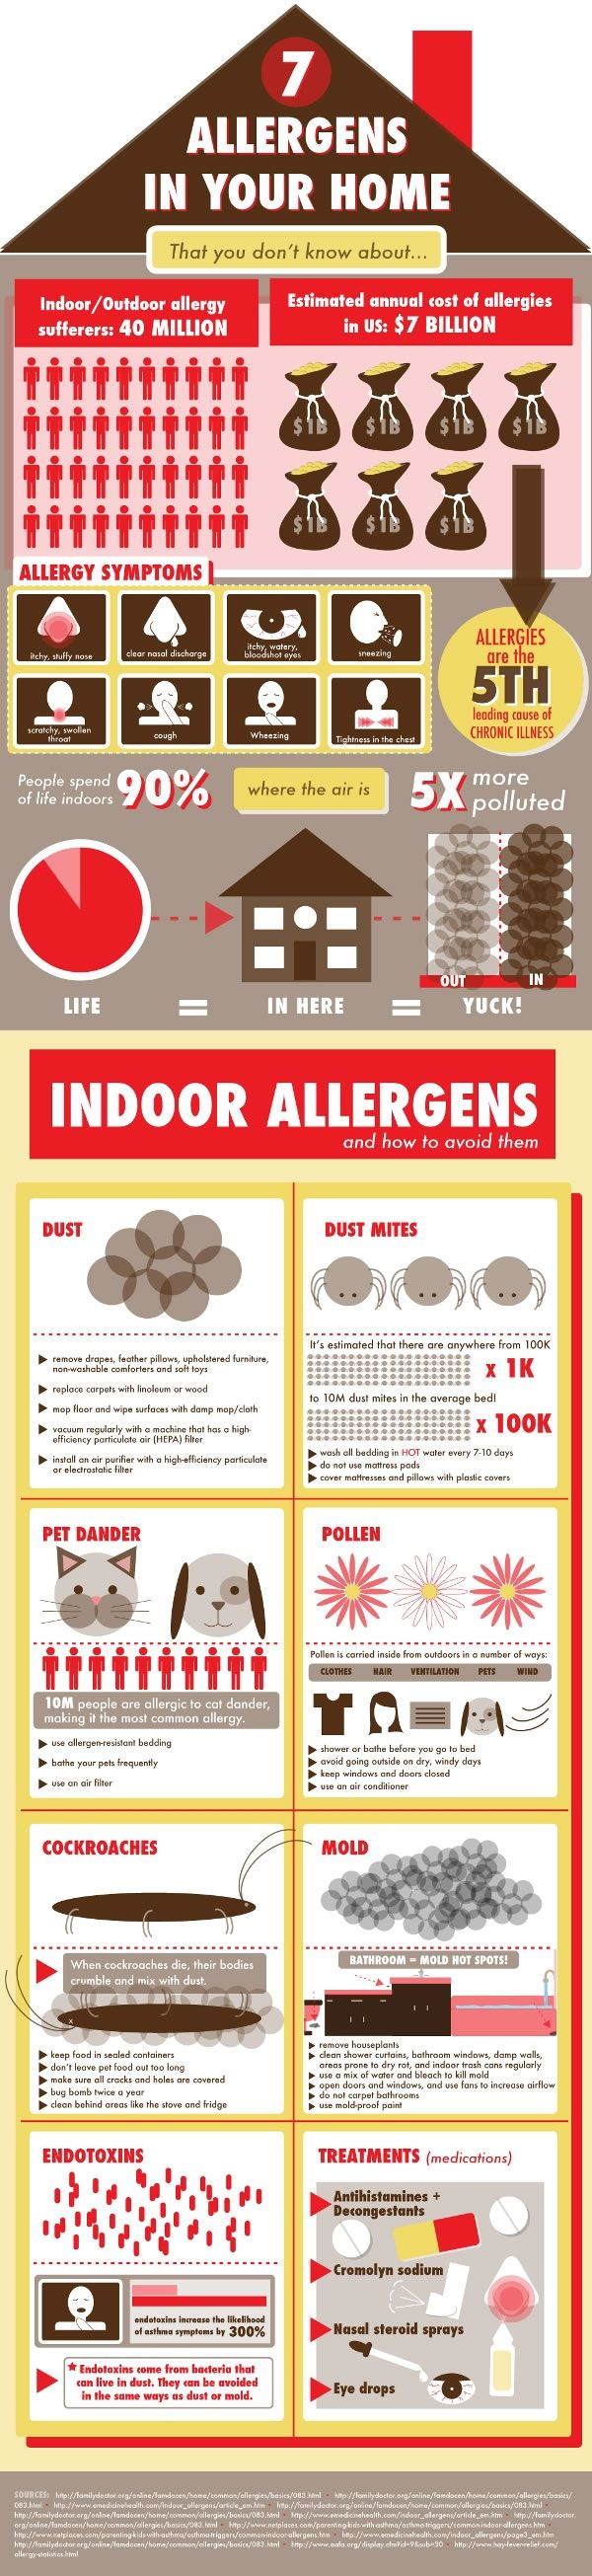 Allergies. To learn more about ridding yourself of allergies CLICK THE IMAGE